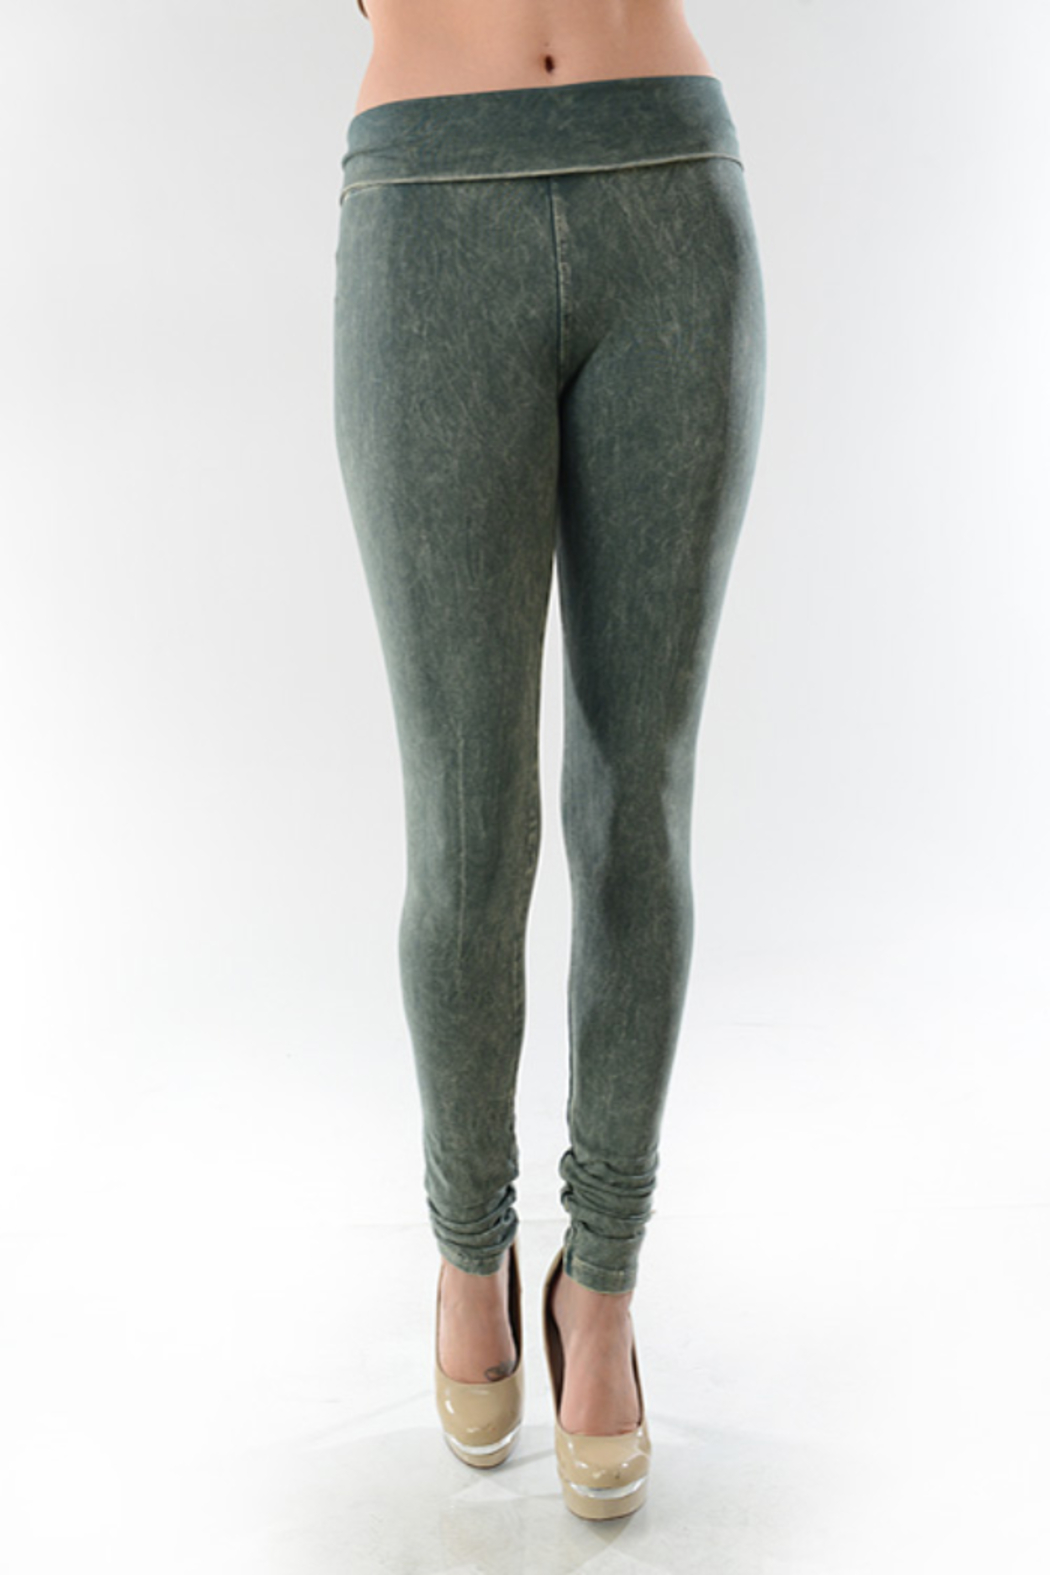 T-Party  Mineral Wash Foldover Leggings - Front Cropped Image